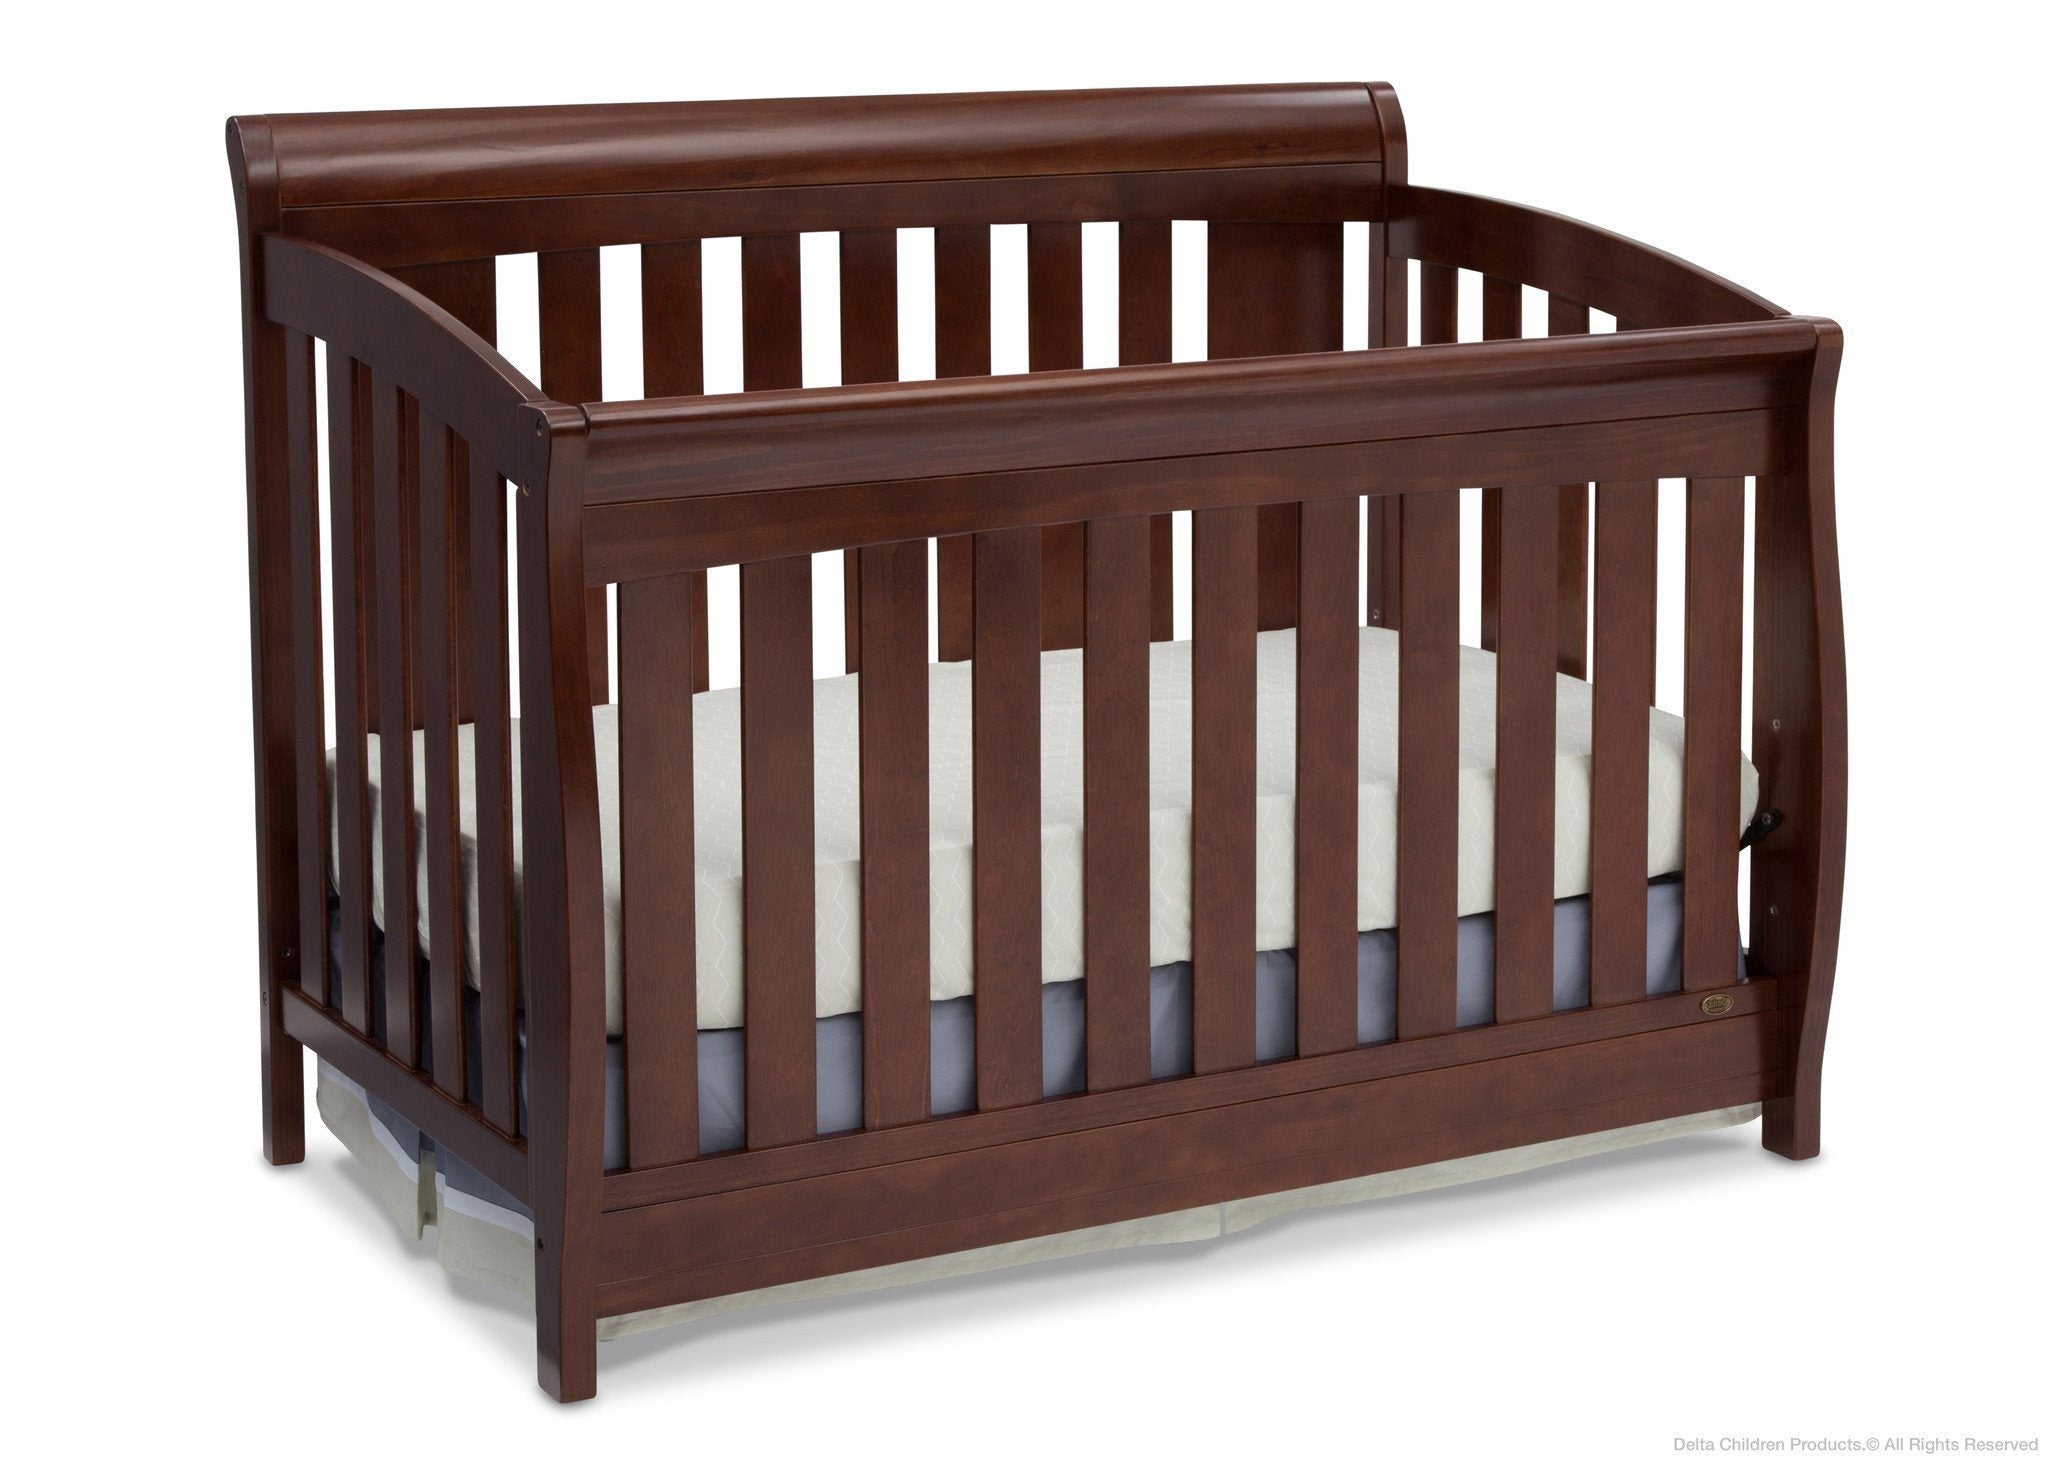 Delta Children Chocolate (204) Clermont 4-in-1 Crib, Crib Conversion b2b